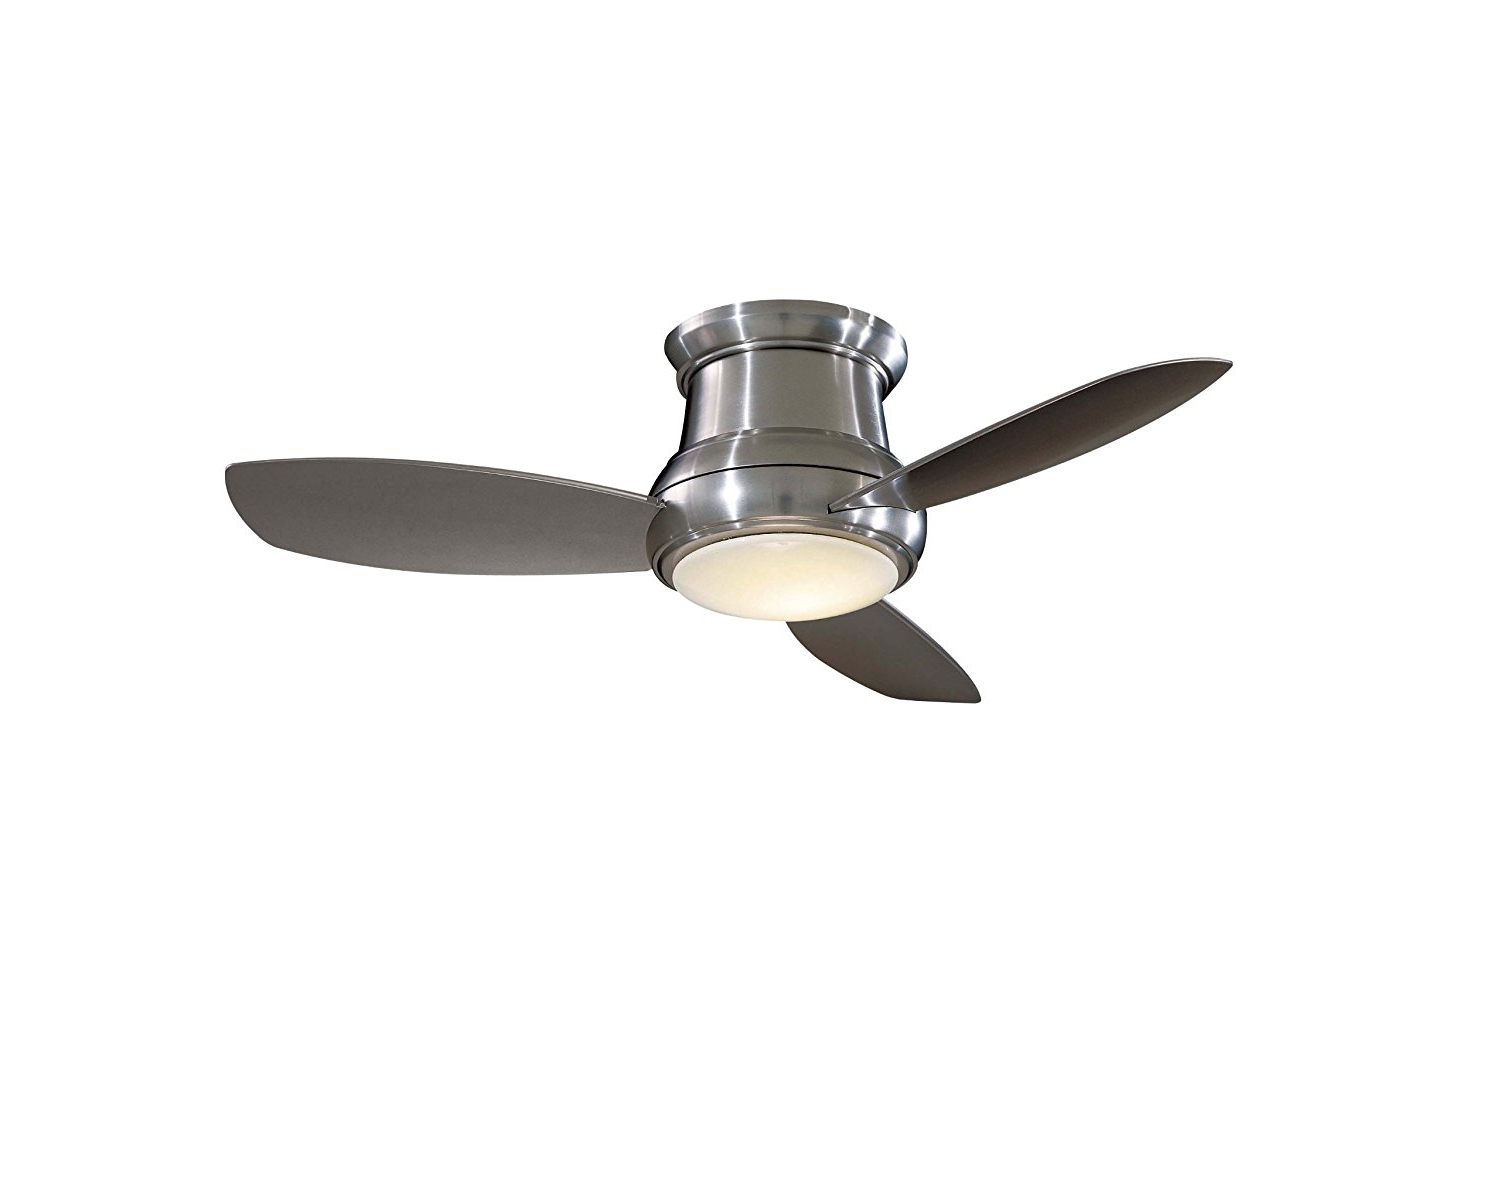 Best And Newest Outdoor Ceiling Fans For 7 Foot Ceilings Throughout Ceiling Fan: Captivating Flush Mount Ceiling Fan With Light Ideas 32 (Gallery 8 of 20)